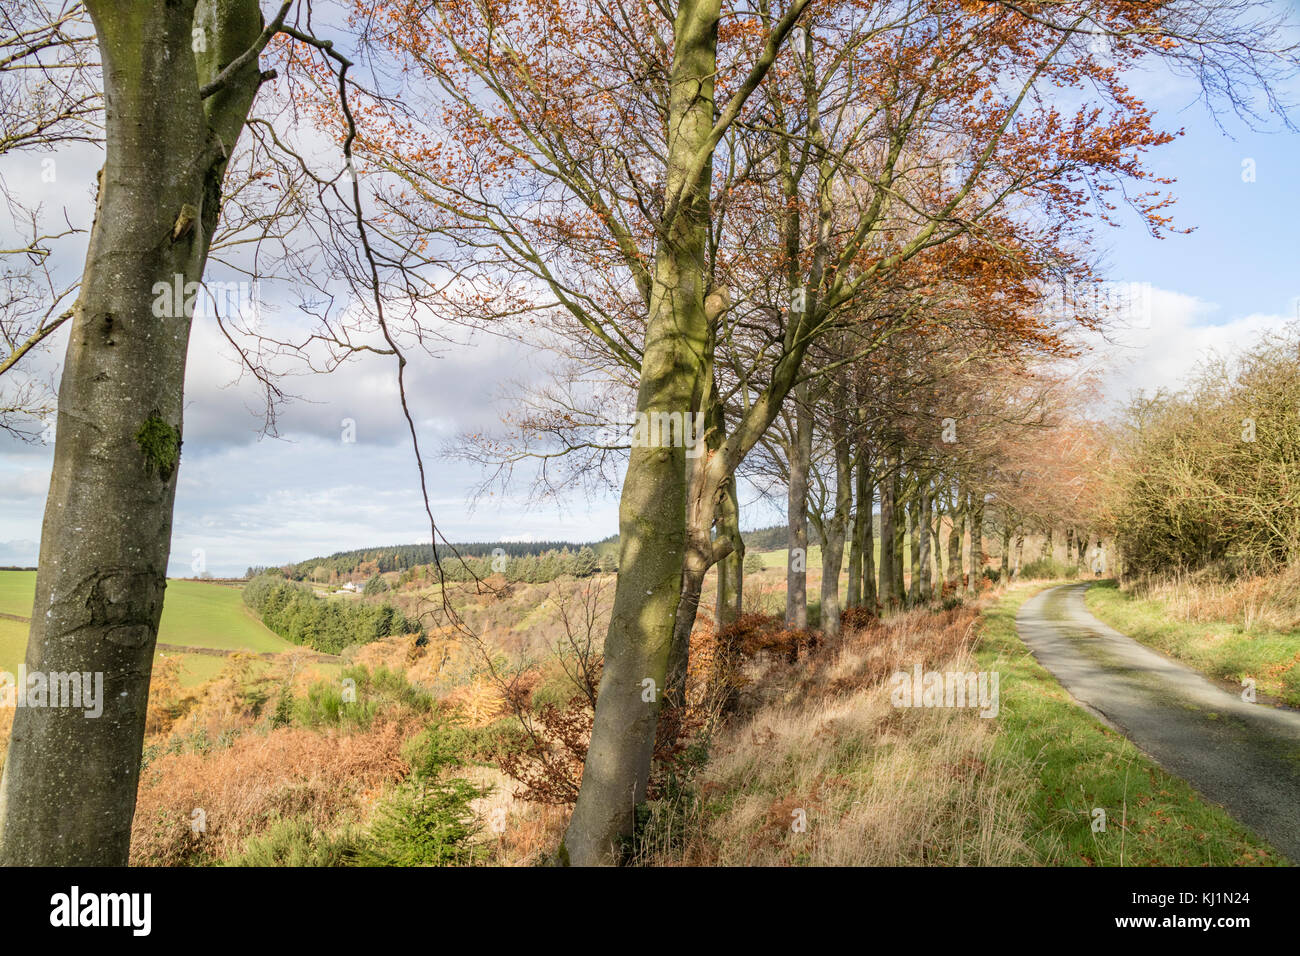 Welsh border country near the small rural town of Clun, Shropshire, England, UK - Stock Image